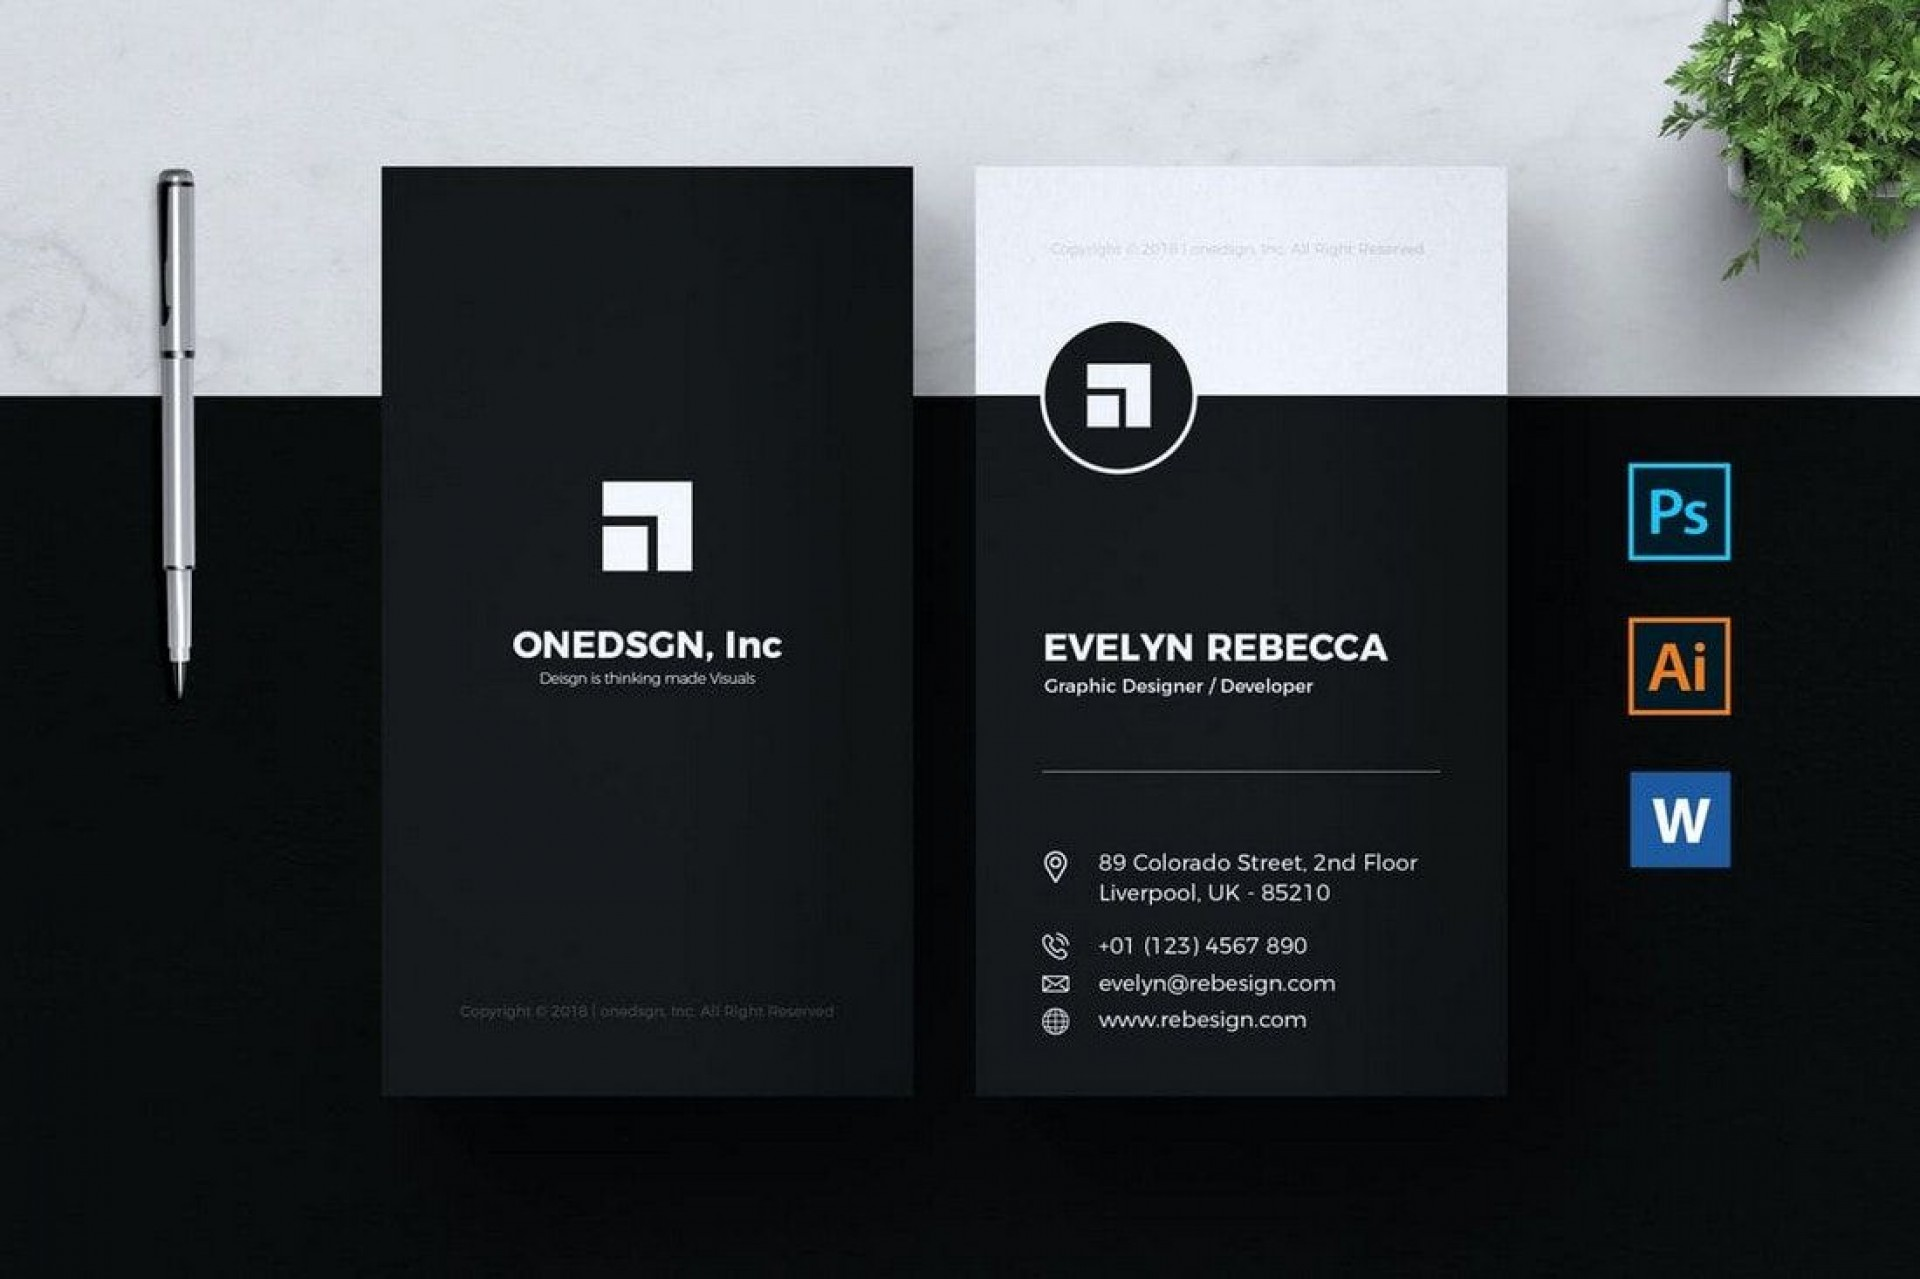 008 Marvelou M Office Busines Card Template Highest Clarity  Templates Microsoft 2010 20071920